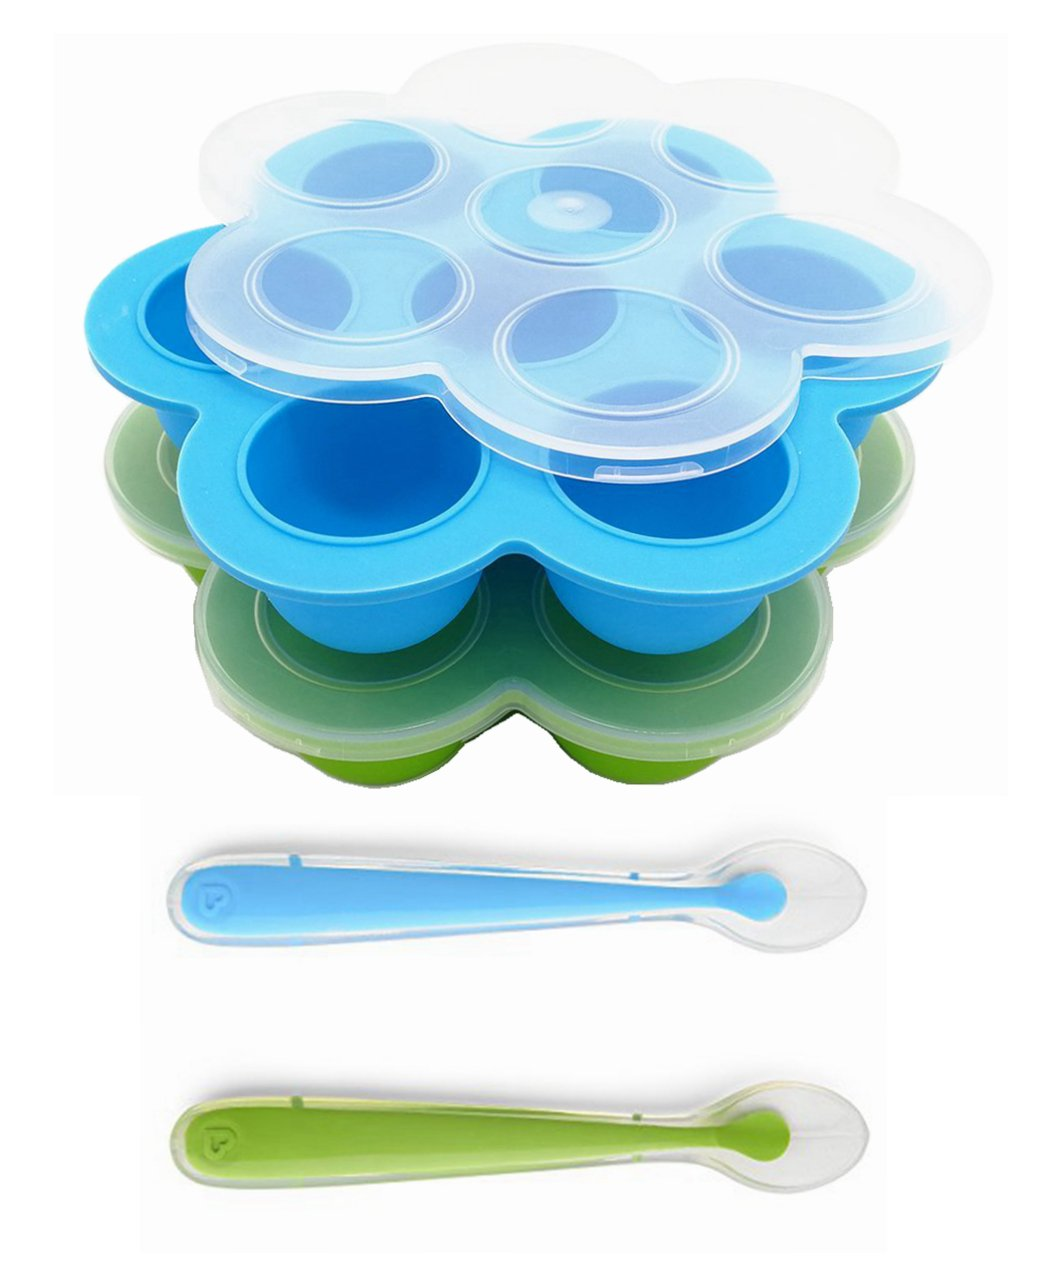 Silicone Baby Food Container Home Snack Maker Tray with Spoon and Plastic Lid for Instant Pot/Baking Oven/Freezer, 100% Child Safe, FDA Approved, NO BPA(2 Trays and 2 Spoons)